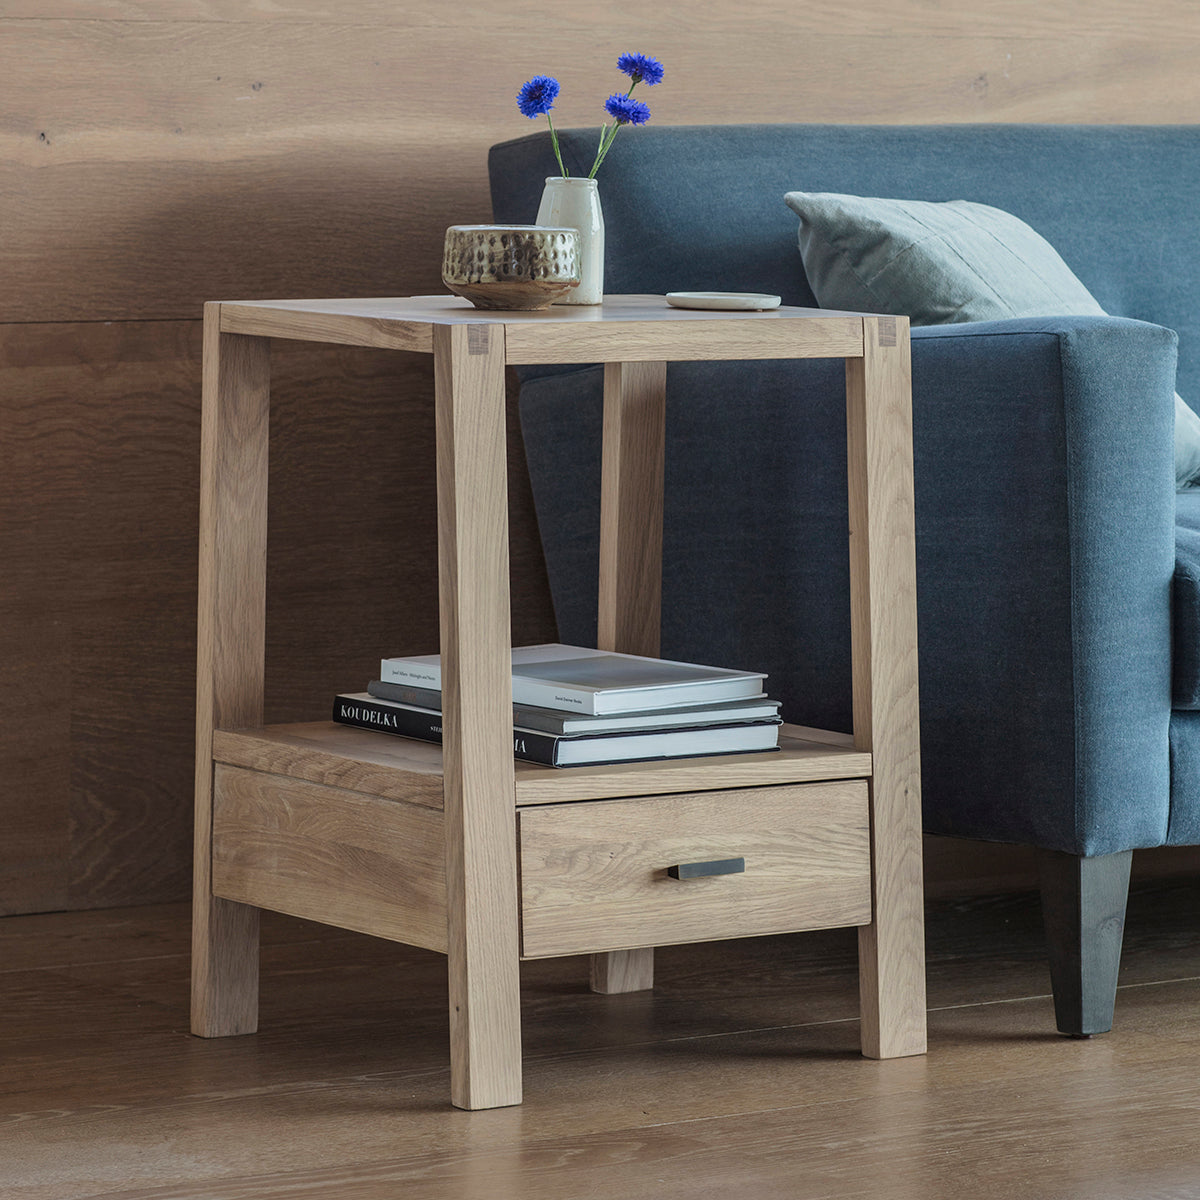 Hexham Bedside Table - Ezzo